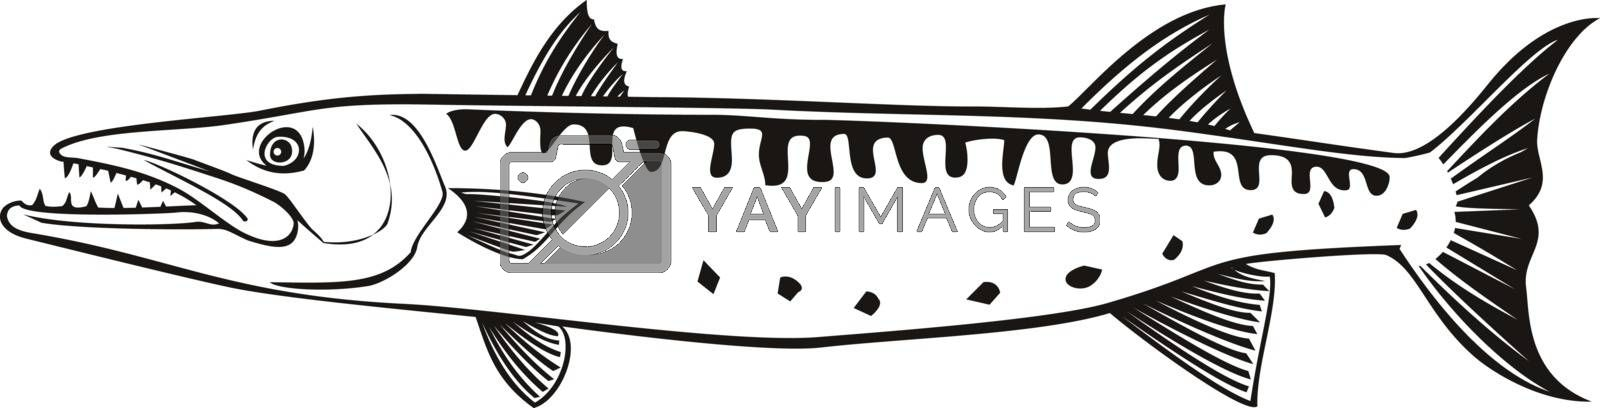 Retro style illustration of a barracuda or Sphyraena barracuda, a large predatory saltwater ray-finned fish of the genus Sphyraenapredatory, swimming side view on isolated background done in black and white.